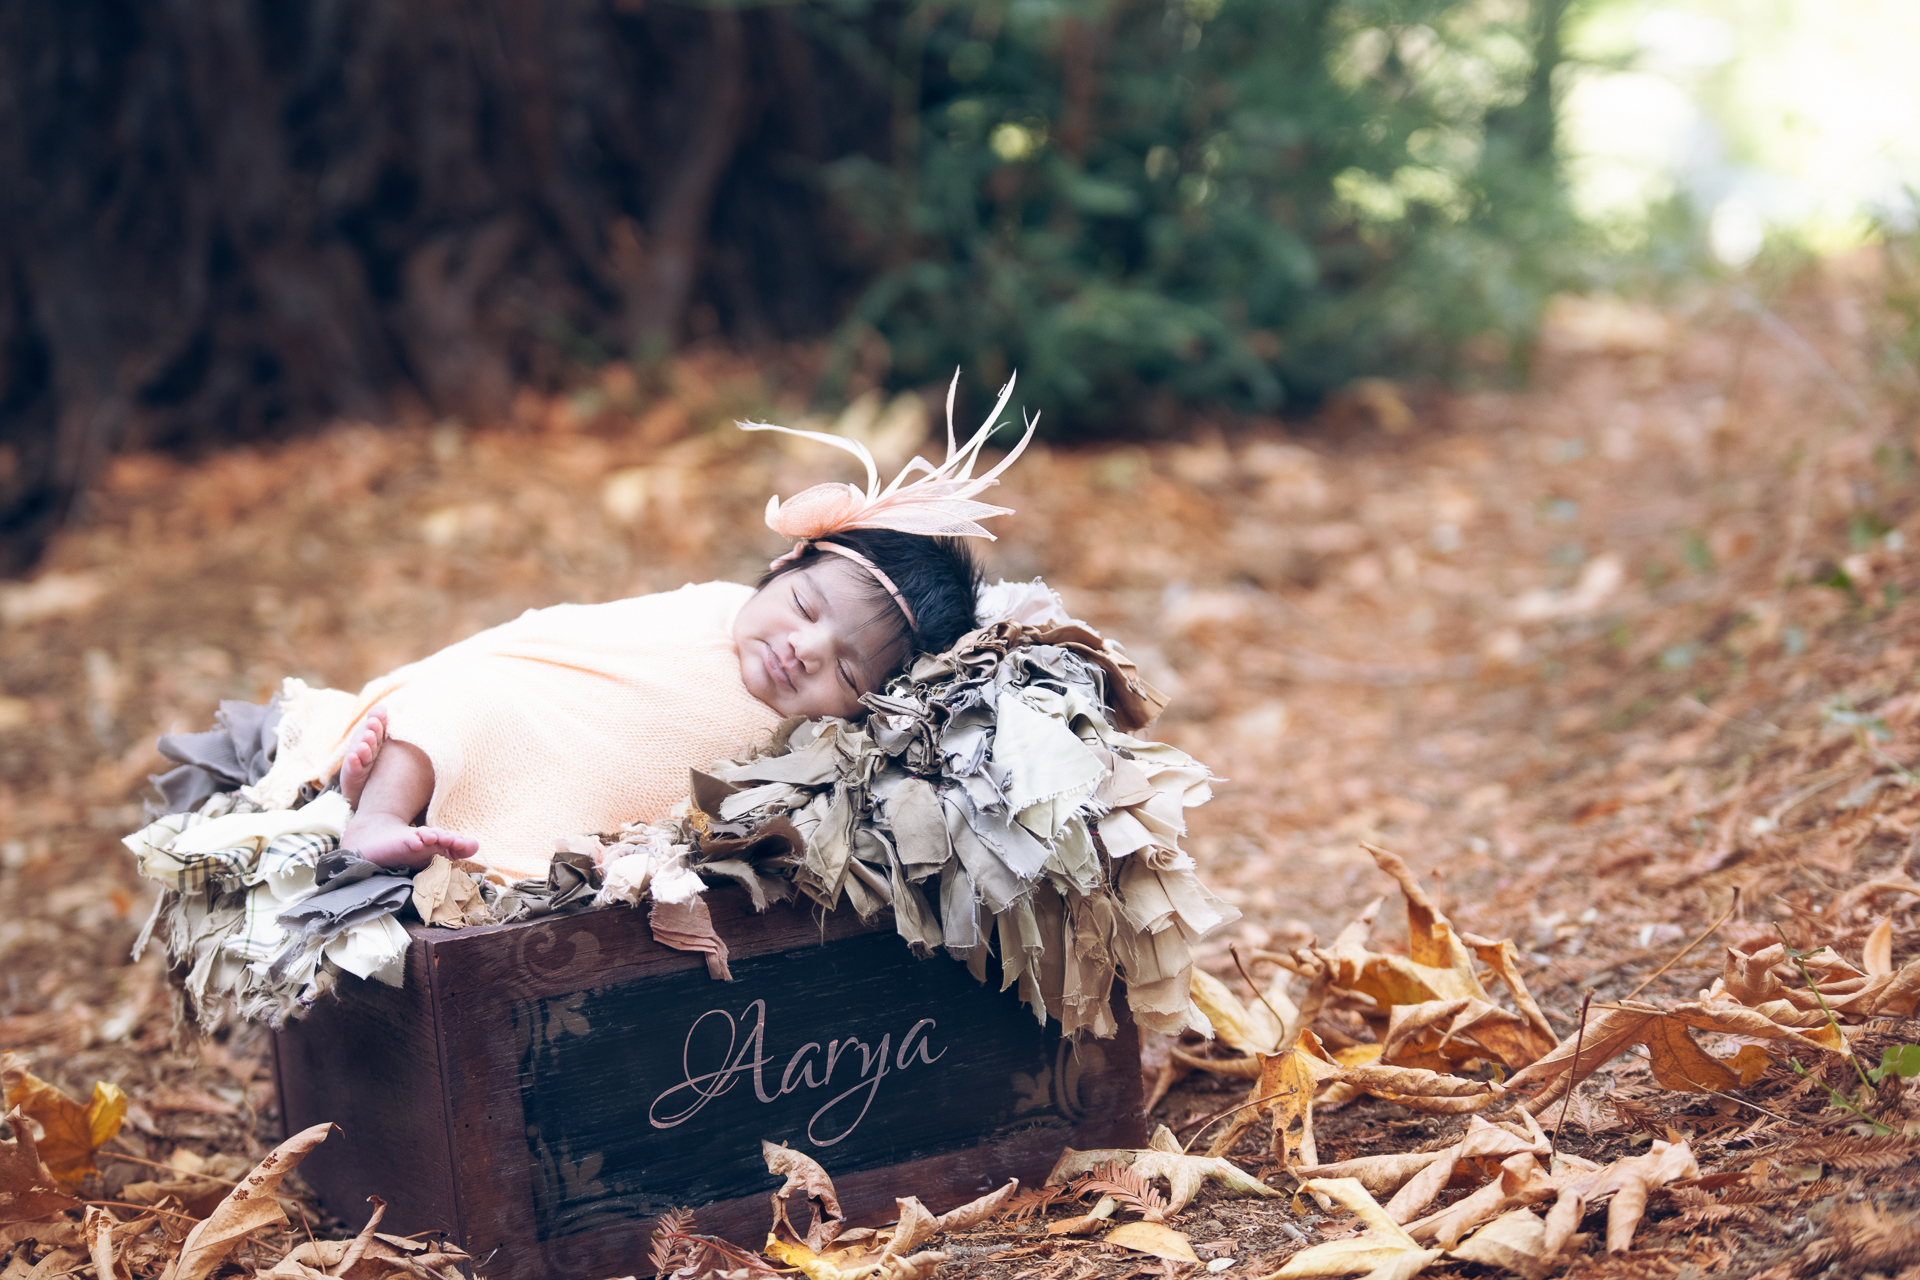 Newborn wearing a headband rests on prop decorated by gray tones carpet during fall season outdoors.